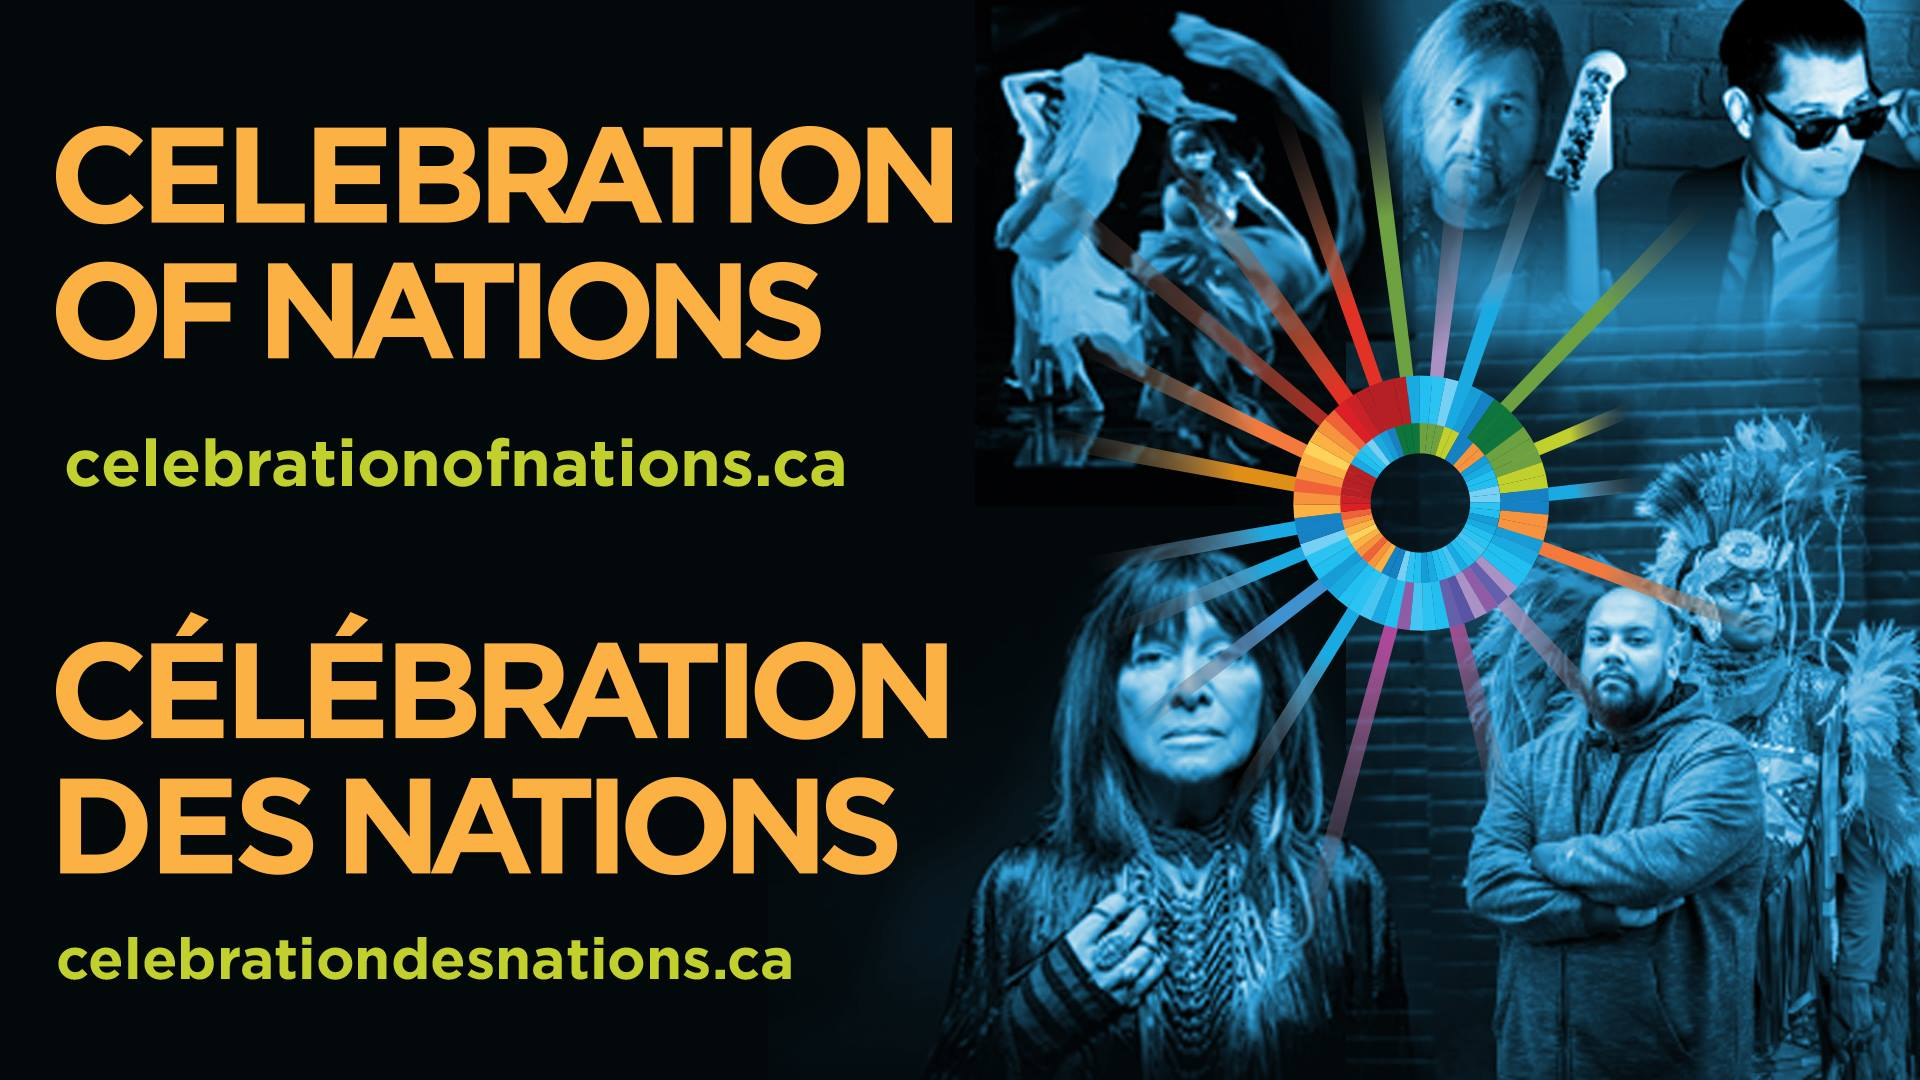 - This is an opportunity for Niagara residents and visitors to actively participate in an inclusive and engaging community gathering that will foster a greater sense of belonging, support of meaningful reconciliation, and leave a lasting legacy of goodwill for future generations. The three-day Indigenous arts extravaganza will aim to provide a far-reaching platform for the community to embrace and honour the unique heritage, diverse cultures, and outstanding achievements of First Nations, Inuit, and Métis peoples within Canada.Celebration of Nations 2018 September 7-9th